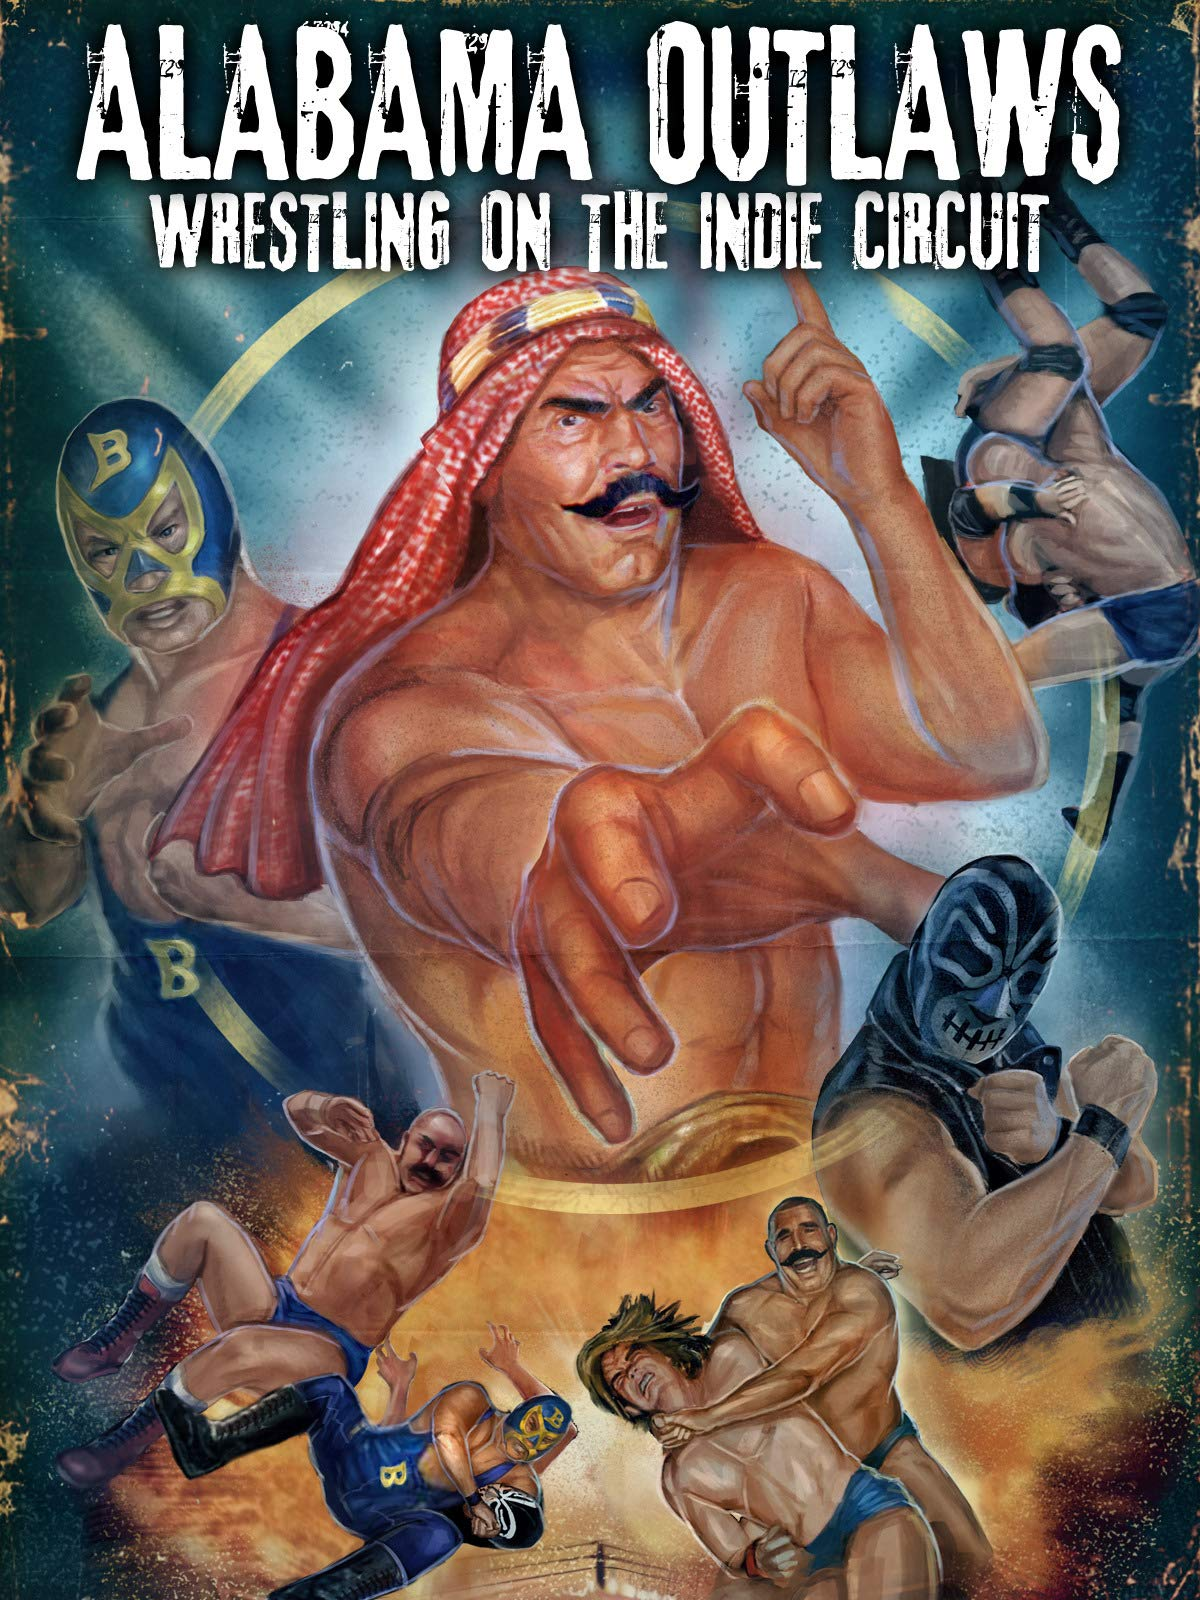 Alabama Outlaws - Wrestling on the Indie Circuit